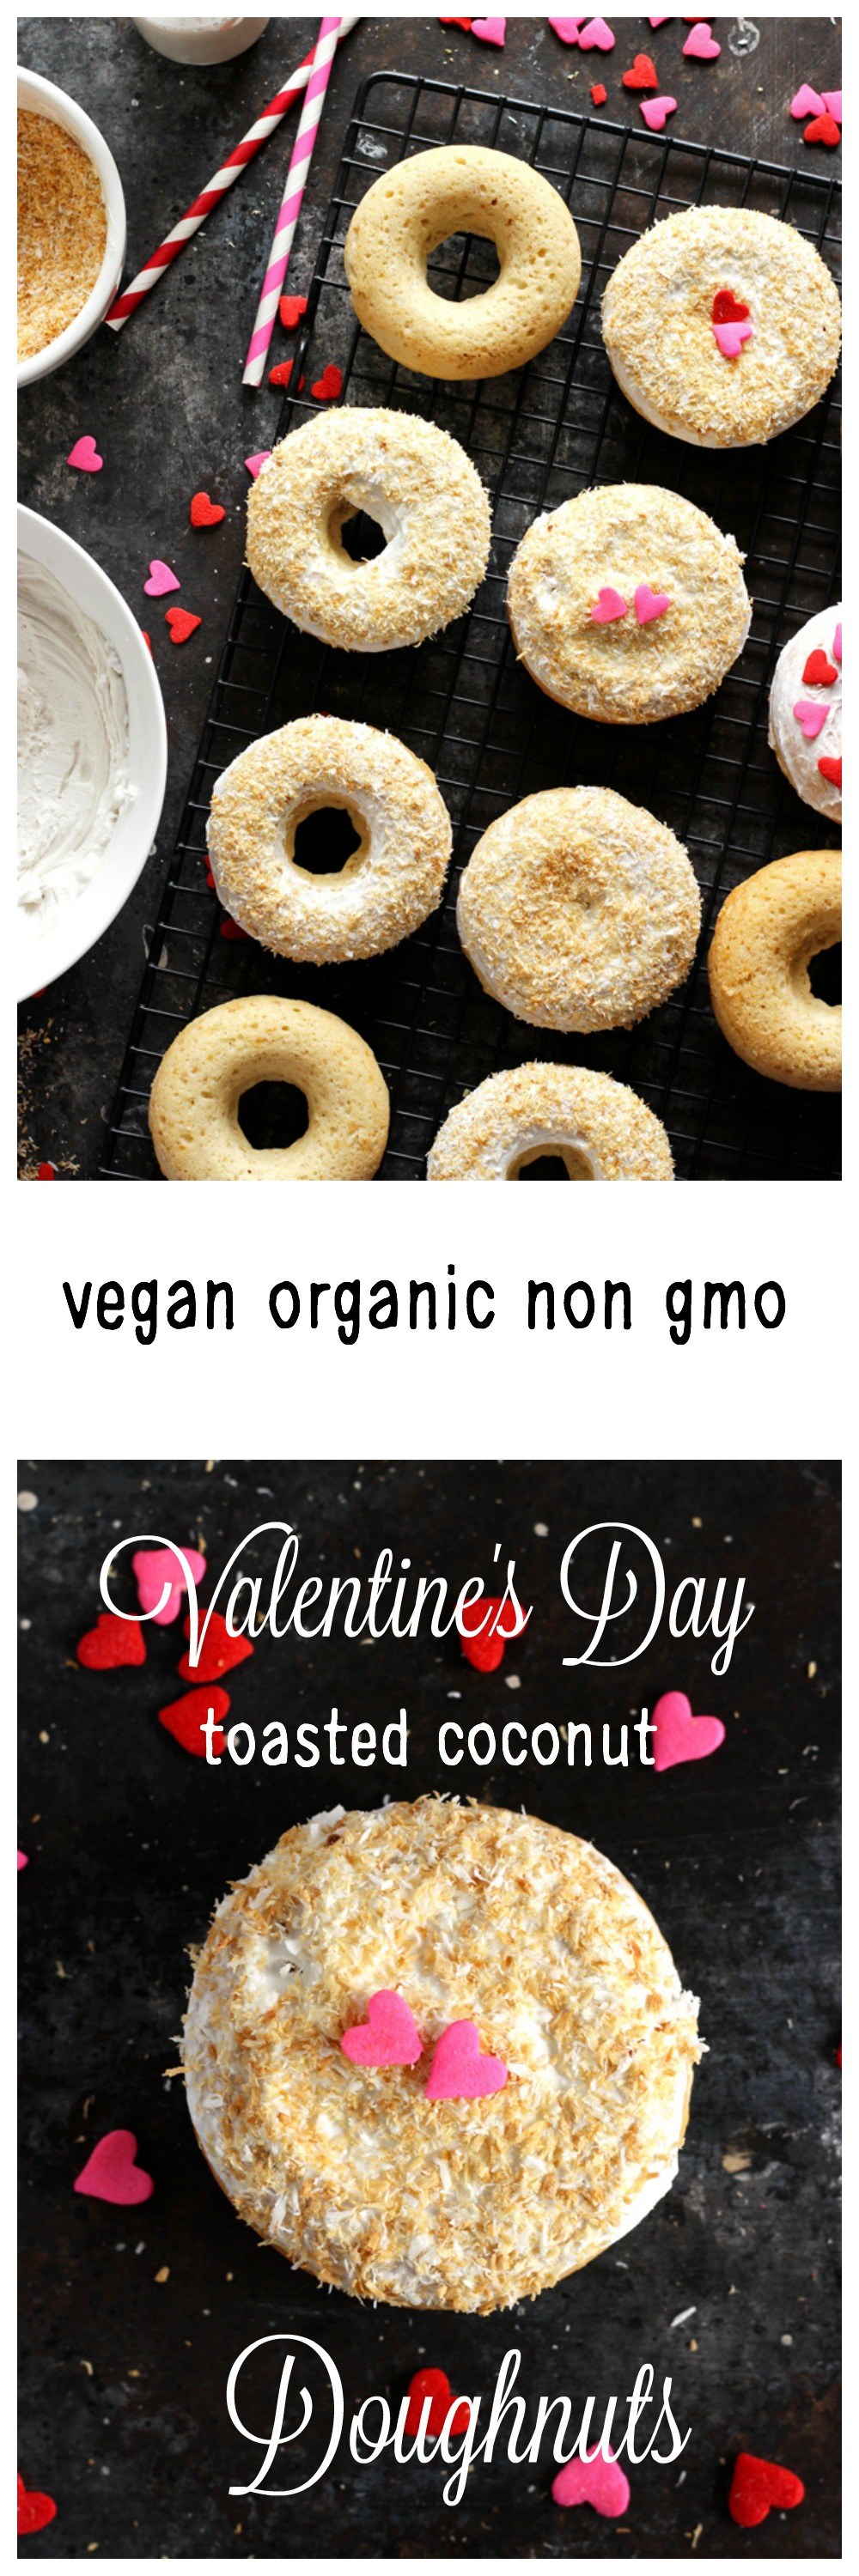 Valentine's Day Toasted Coconut Doughnuts - Fluffy cream filled doughnuts topped with a toasted coconut and hearts. Perfect for Valentine's Day! NeuroticMommy.com #vegan #valentinesday #donuts